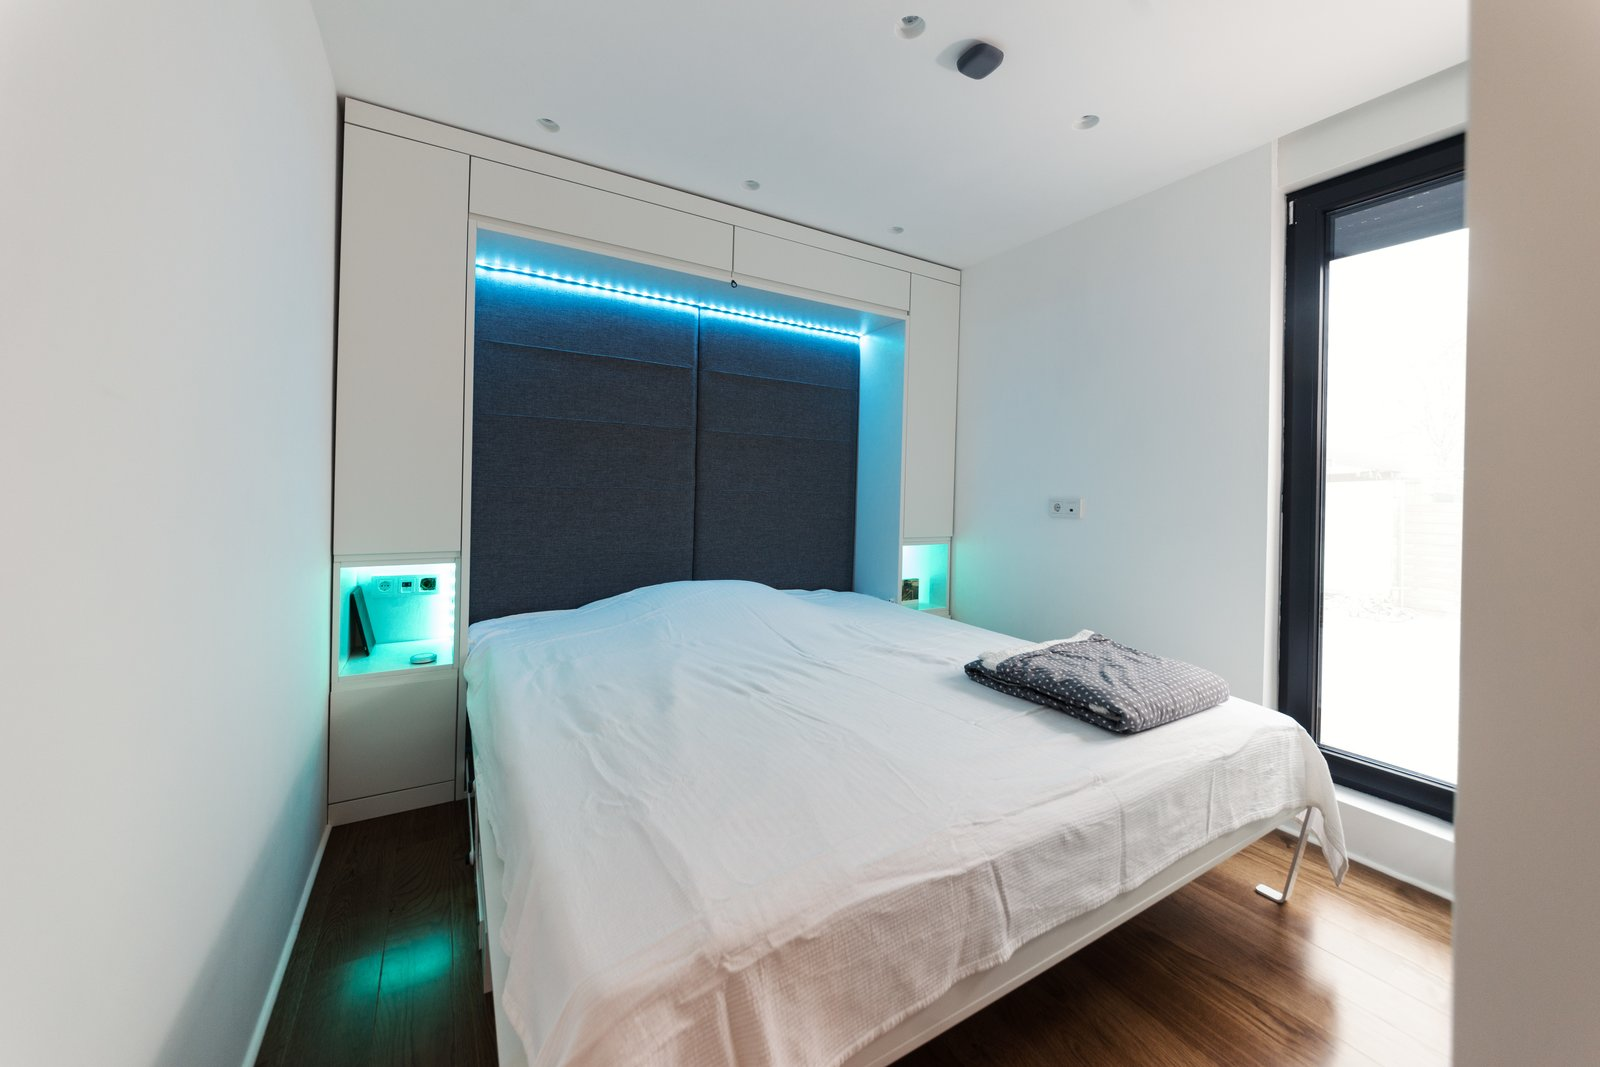 Bedroom, Bed, Storage, Dark Hardwood Floor, Accent Lighting, and Recessed Lighting Coodo integrates space-saving features like a fold-out bed.  Photo 5 of 12 in Meet the Prefab Unit That's Smart, Mobile, and Sustainable